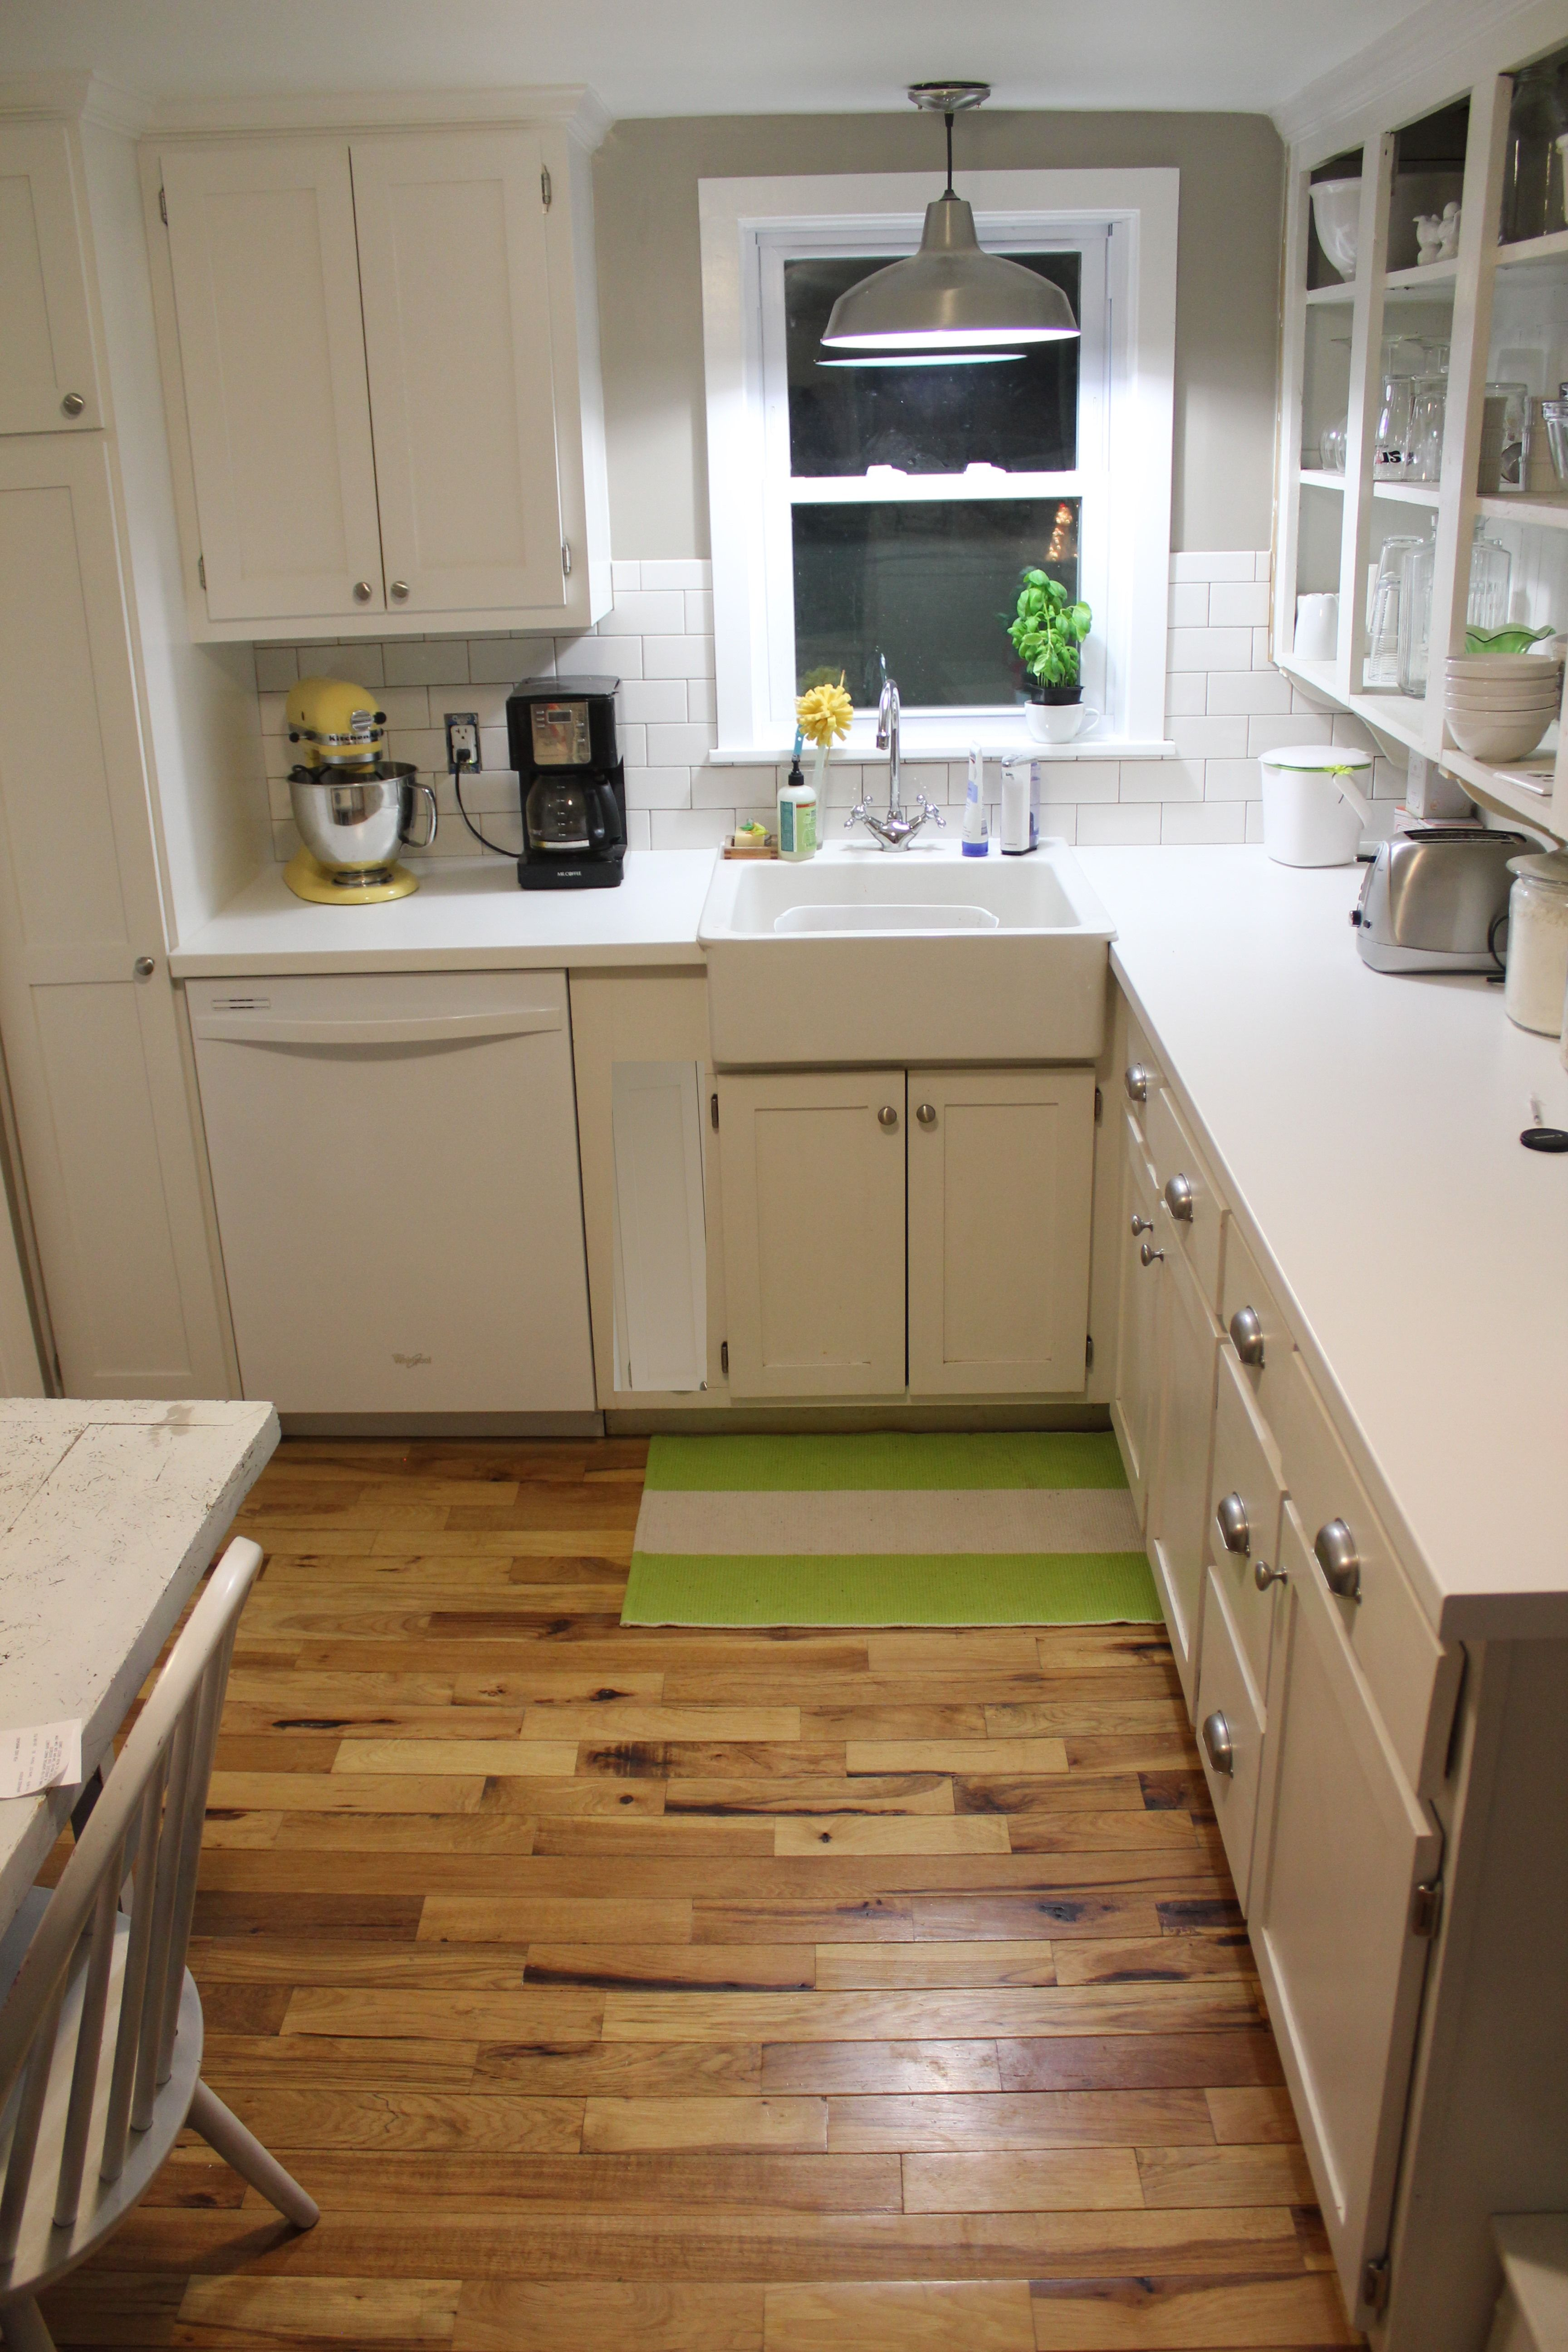 Pragel Countertop 108 Square Foot Kitchen Completely Redone Ikea Pragel